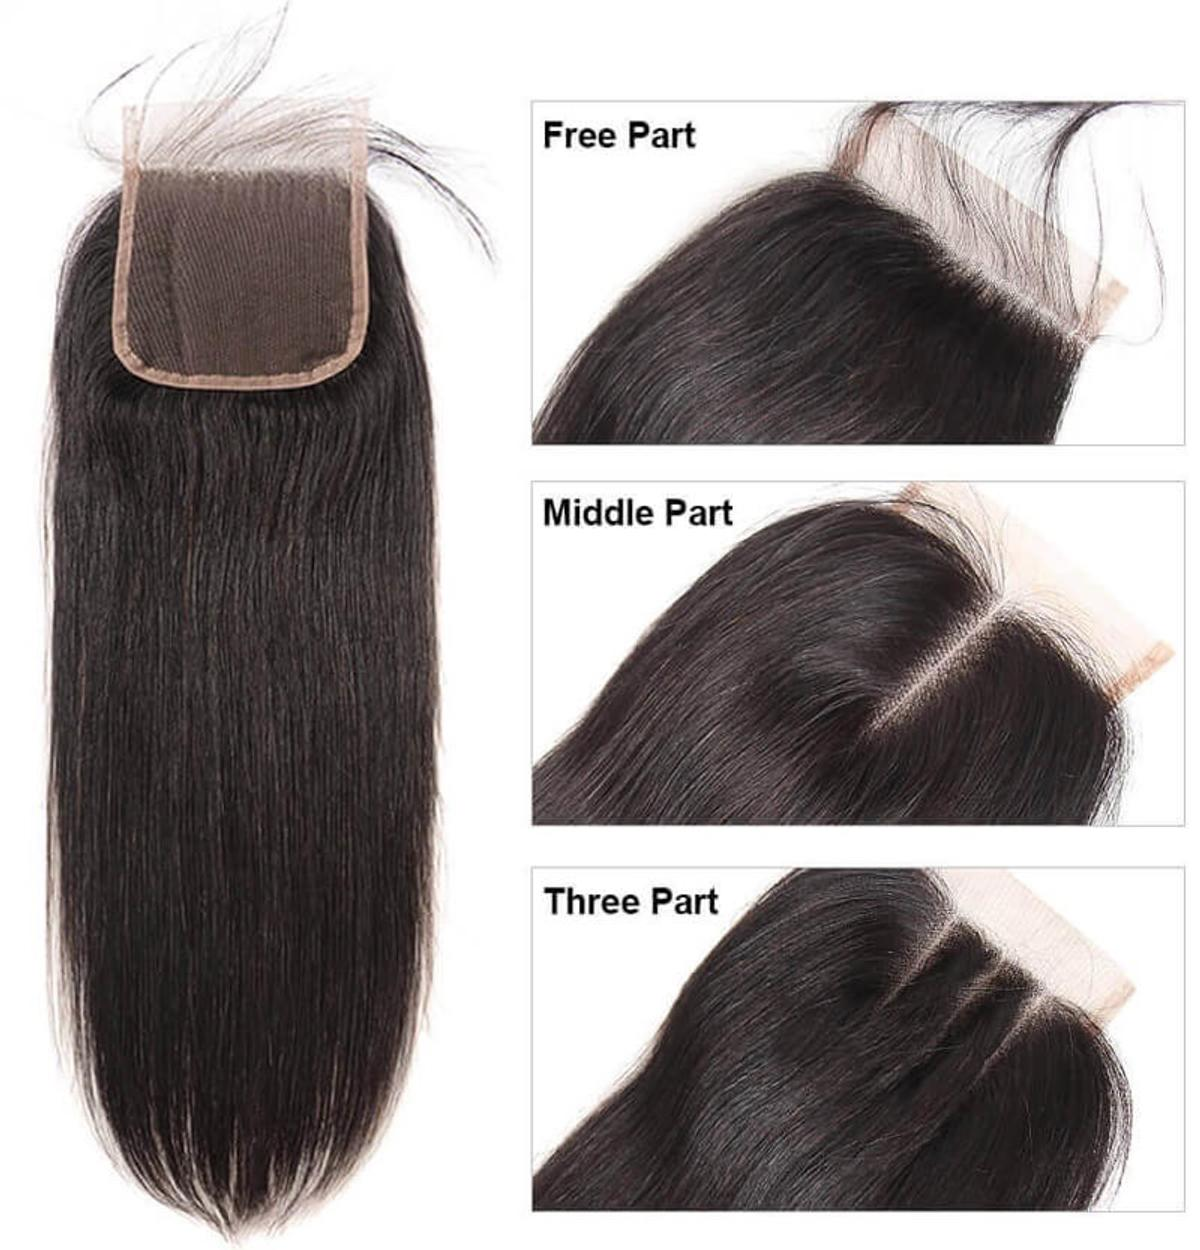 6x6 Closure Weave Bundle In B19 Birmingham For 70 00 For Sale Shpock